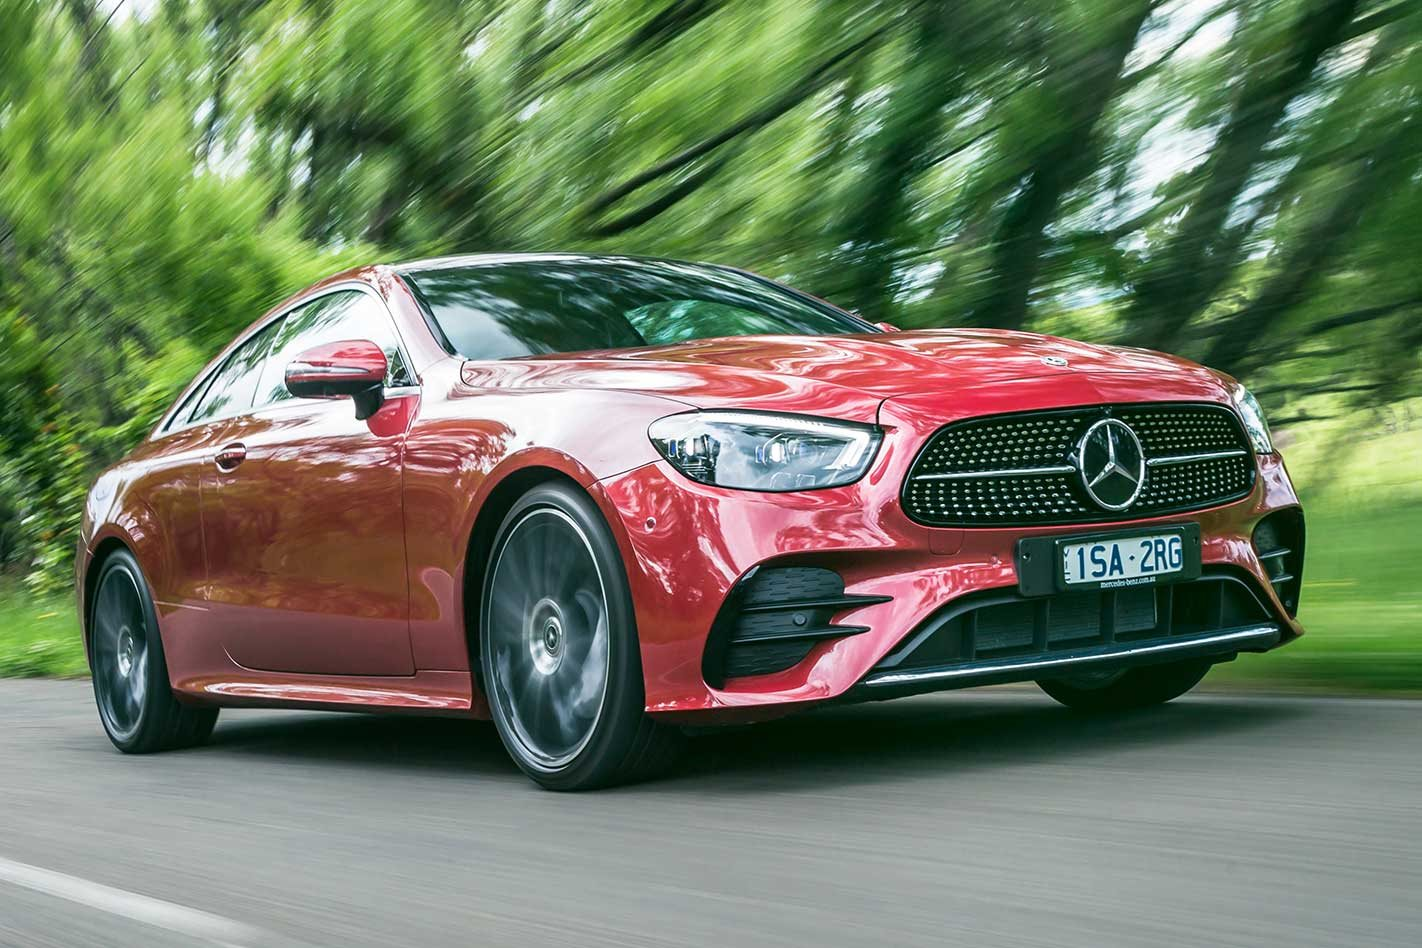 Mercedes-Benz E300 Coupe – evocative styling in a performance package that wants for little.